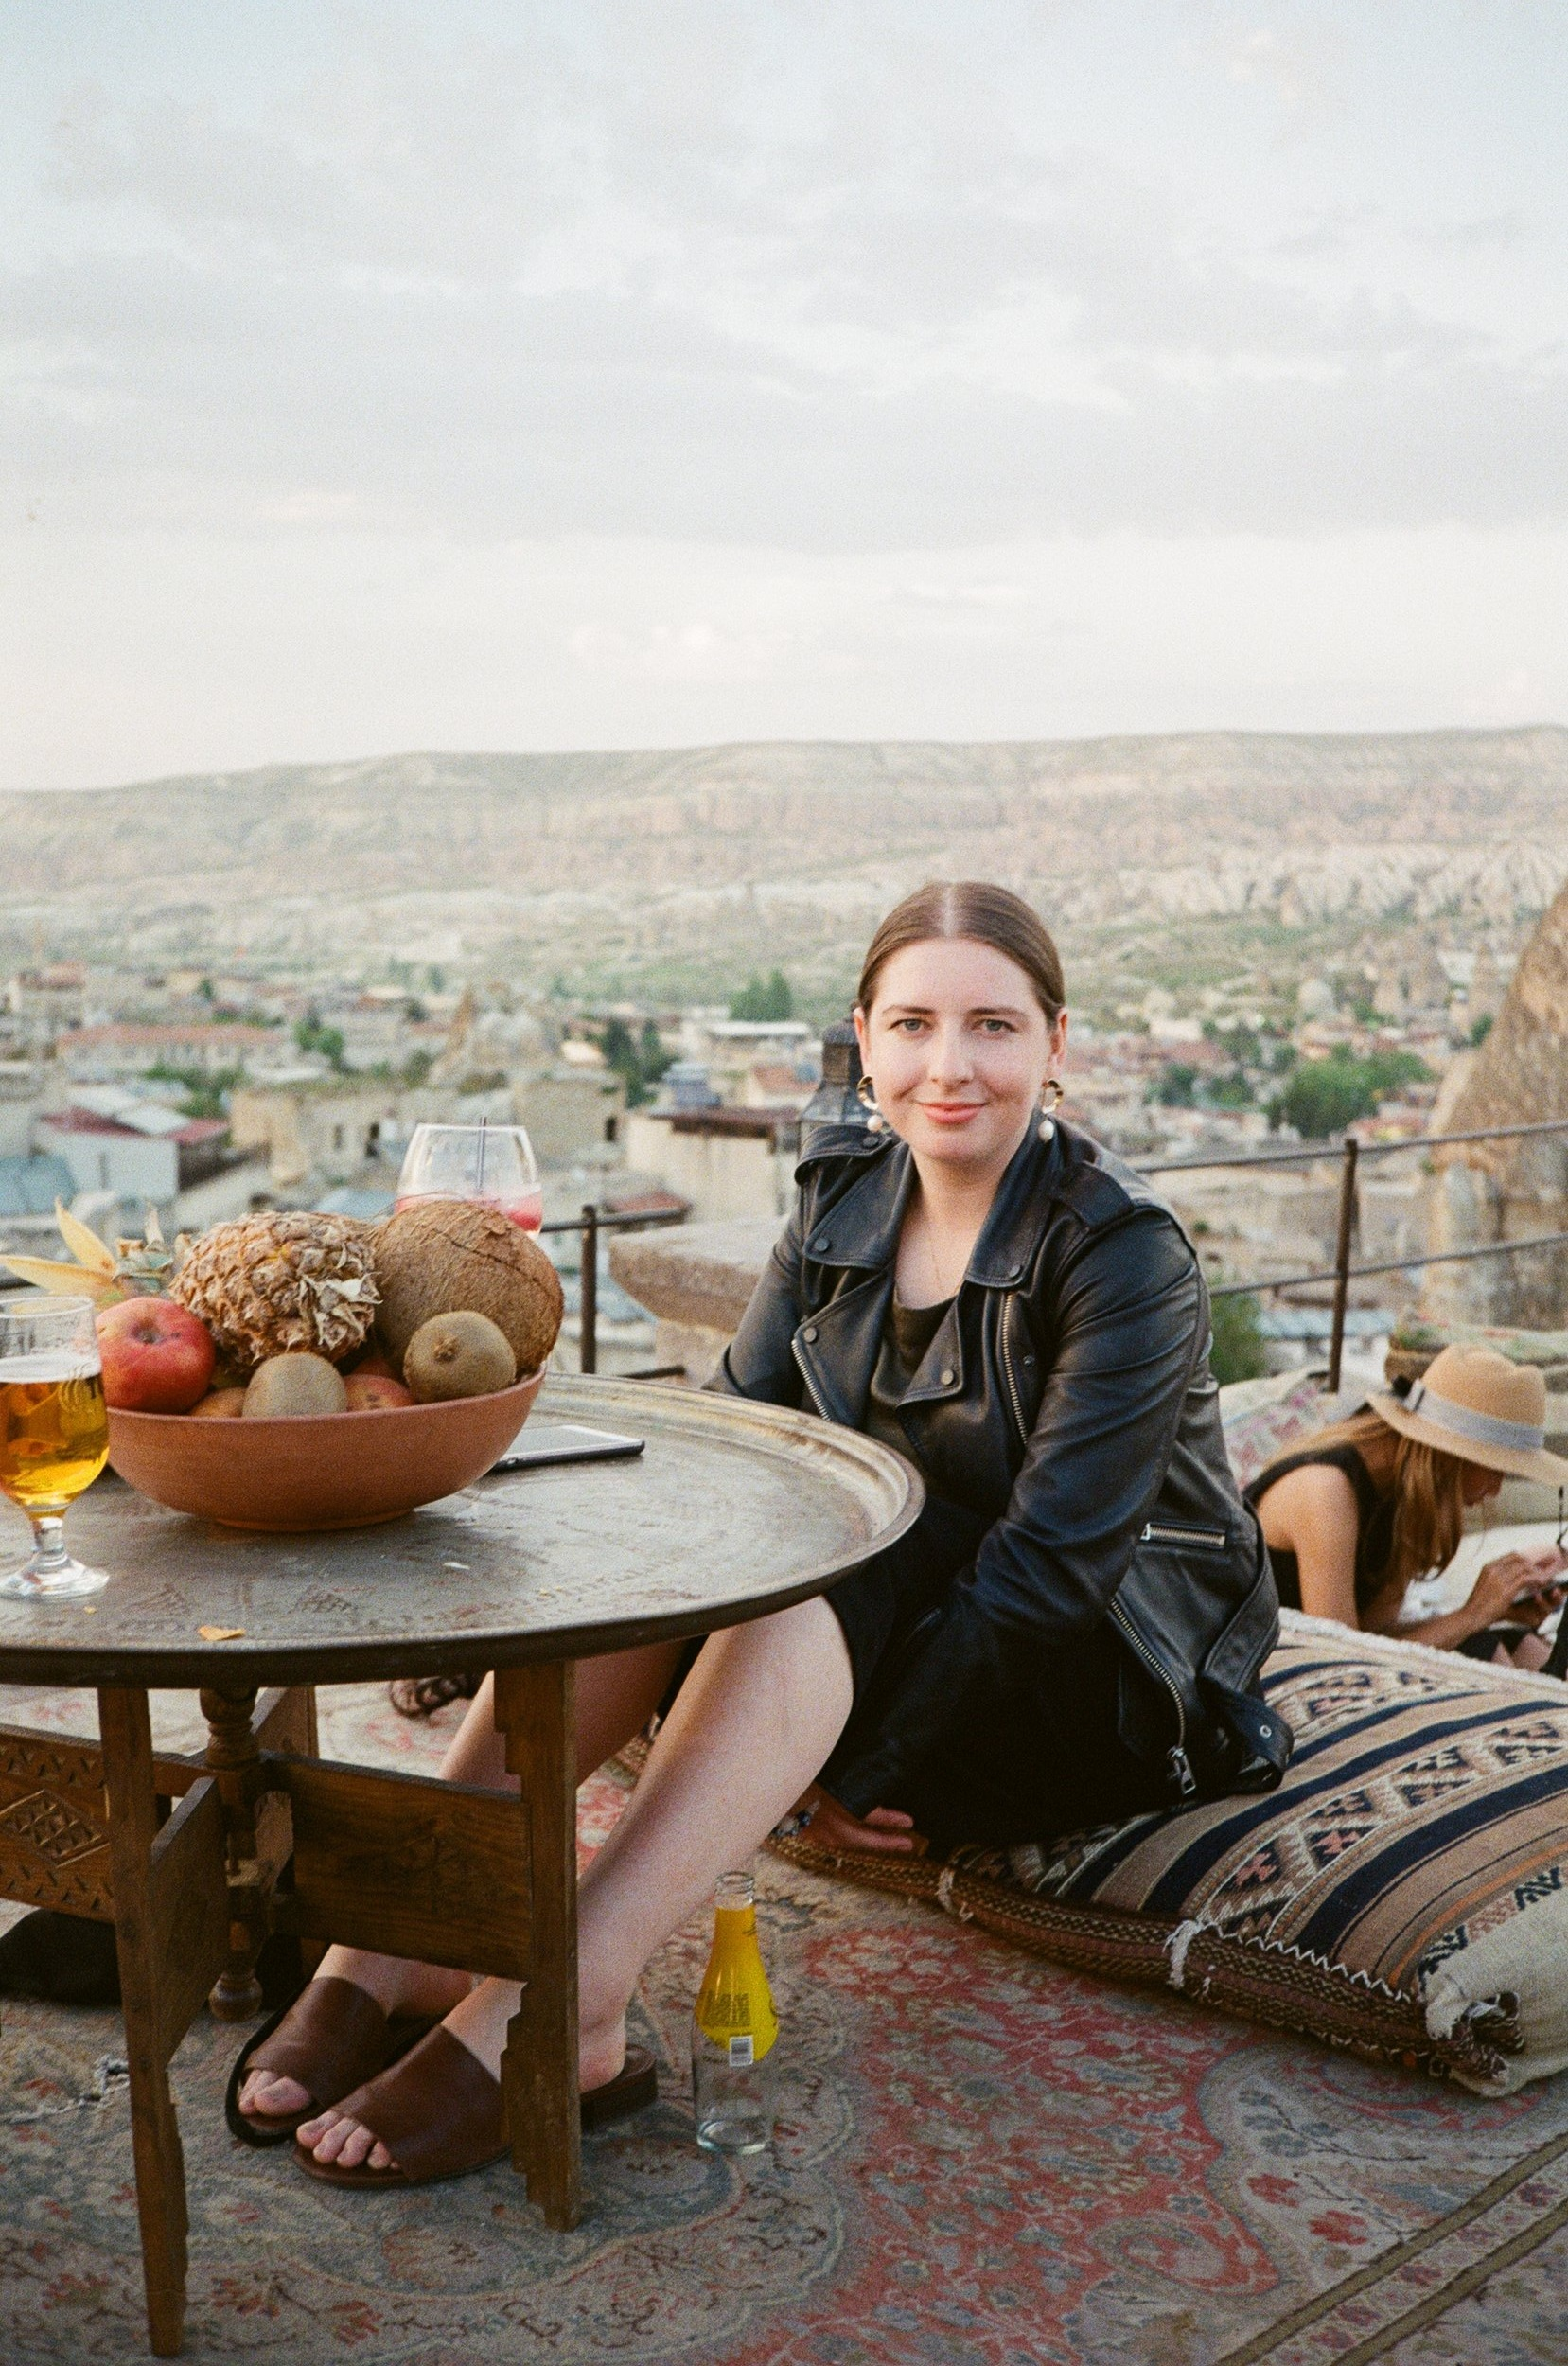 Victoria (we met on our tour in Cappadocia) in 35mm